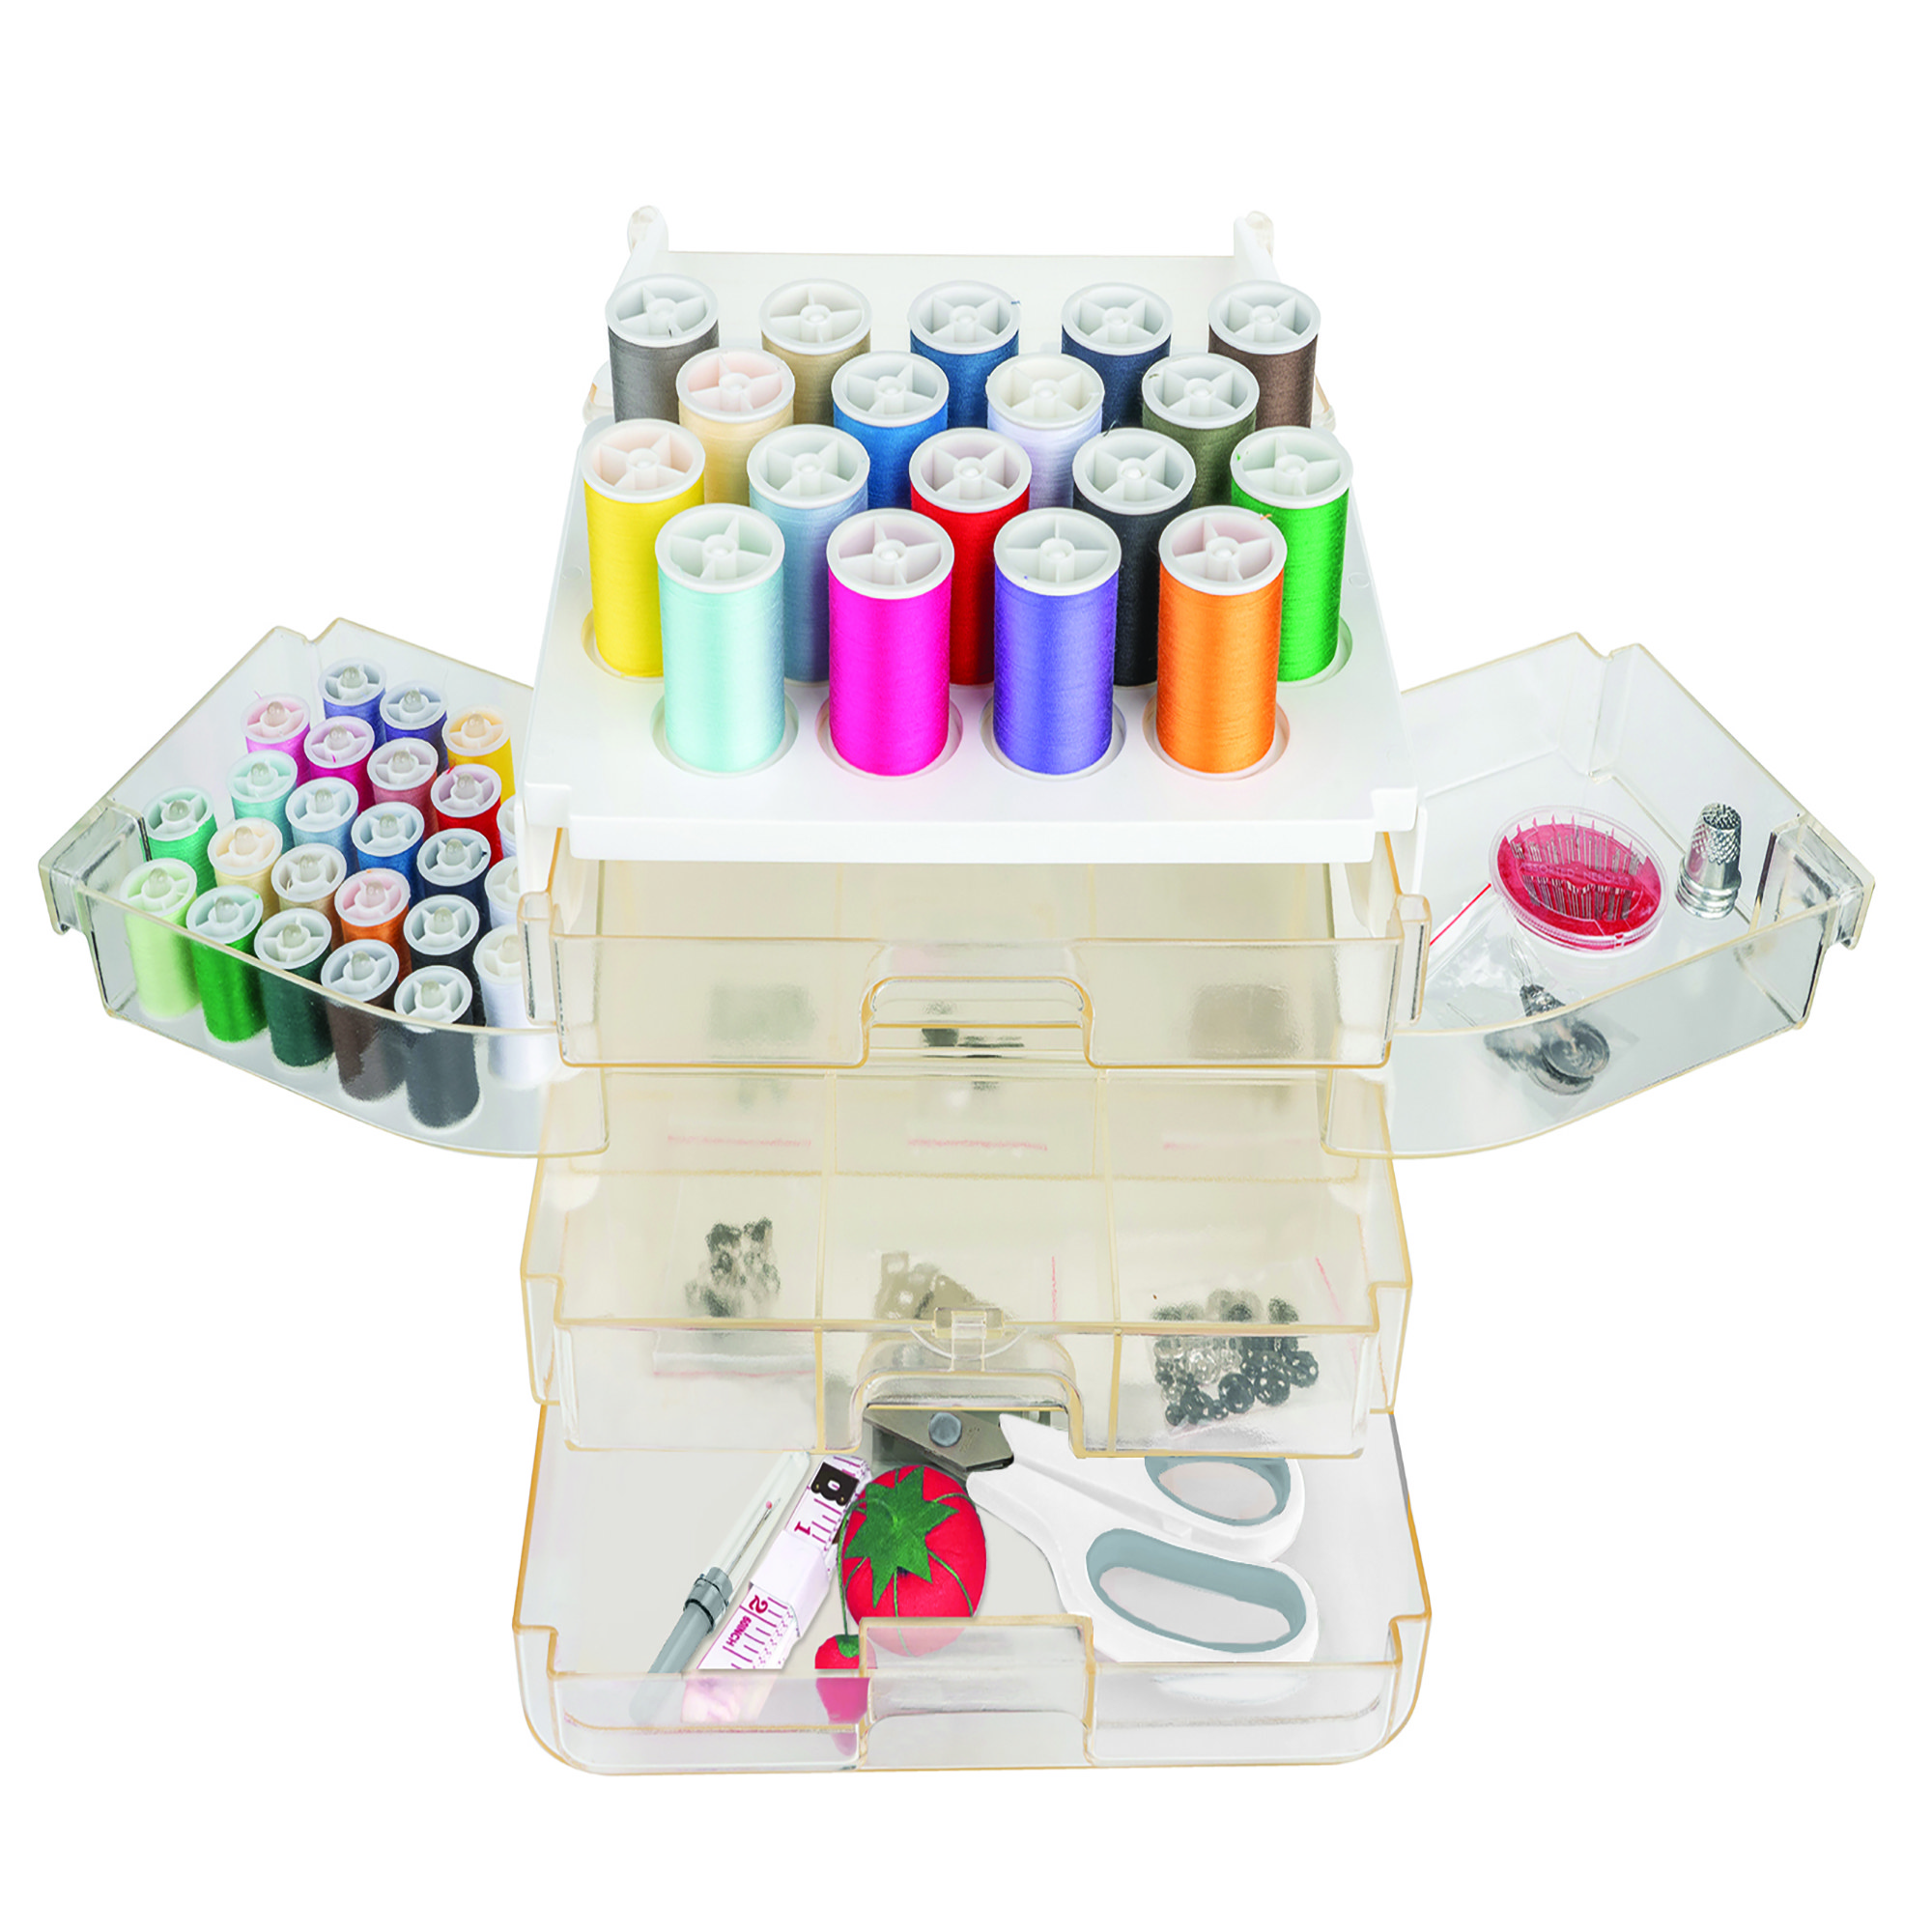 A clear plastic sewing kit with colorful threads, scissors and more